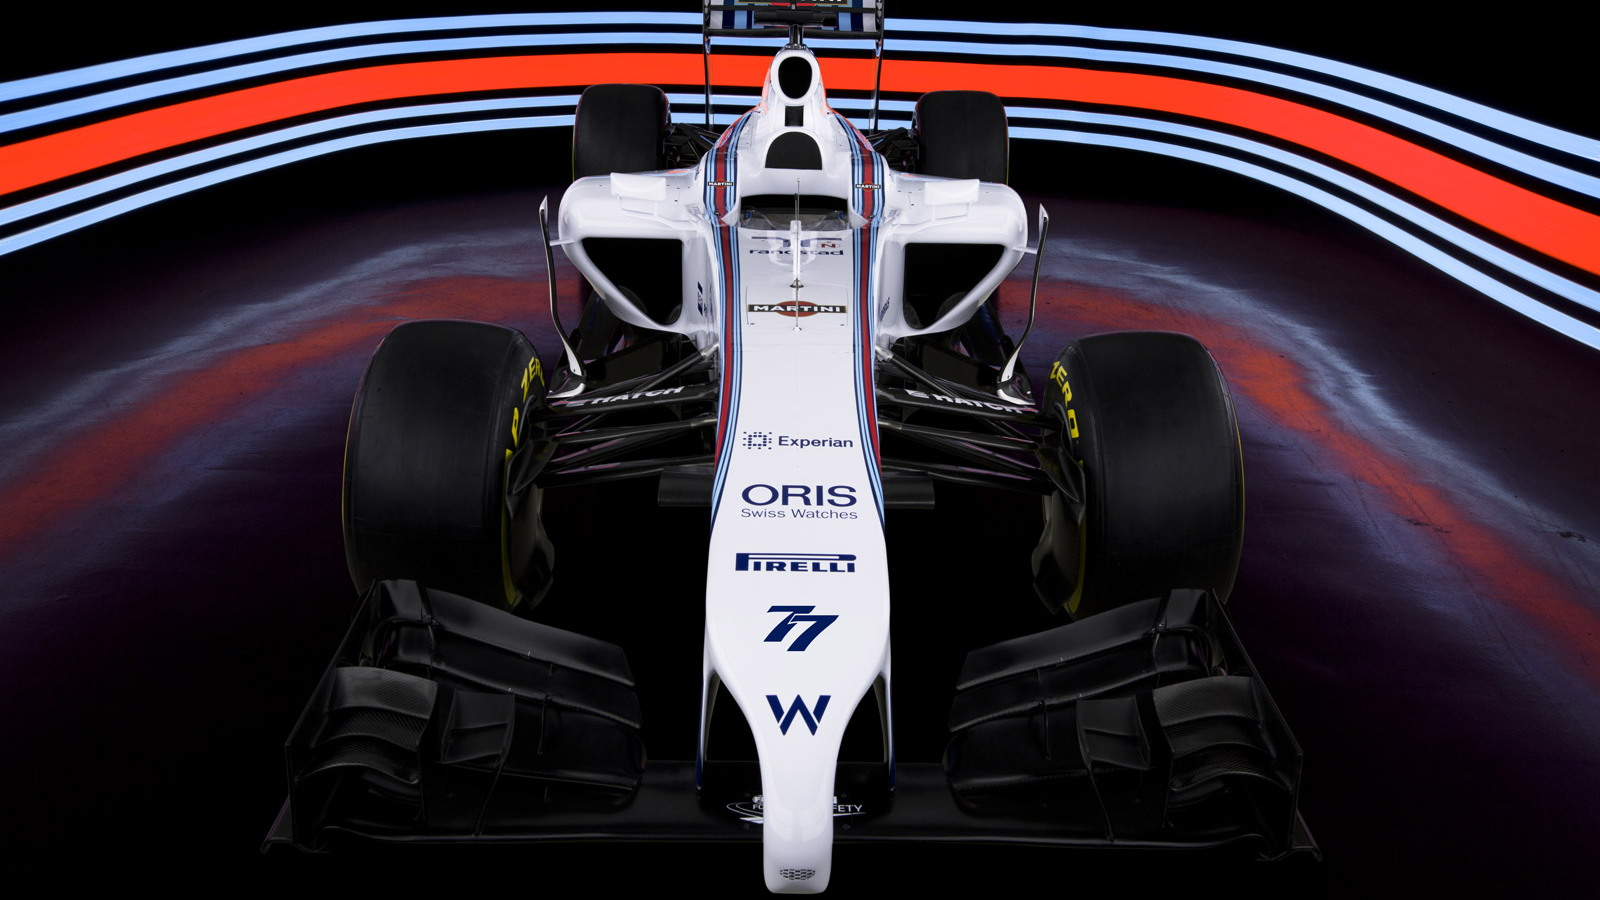 Williams's FW36 2014 Formula One car in Martini Racing livery